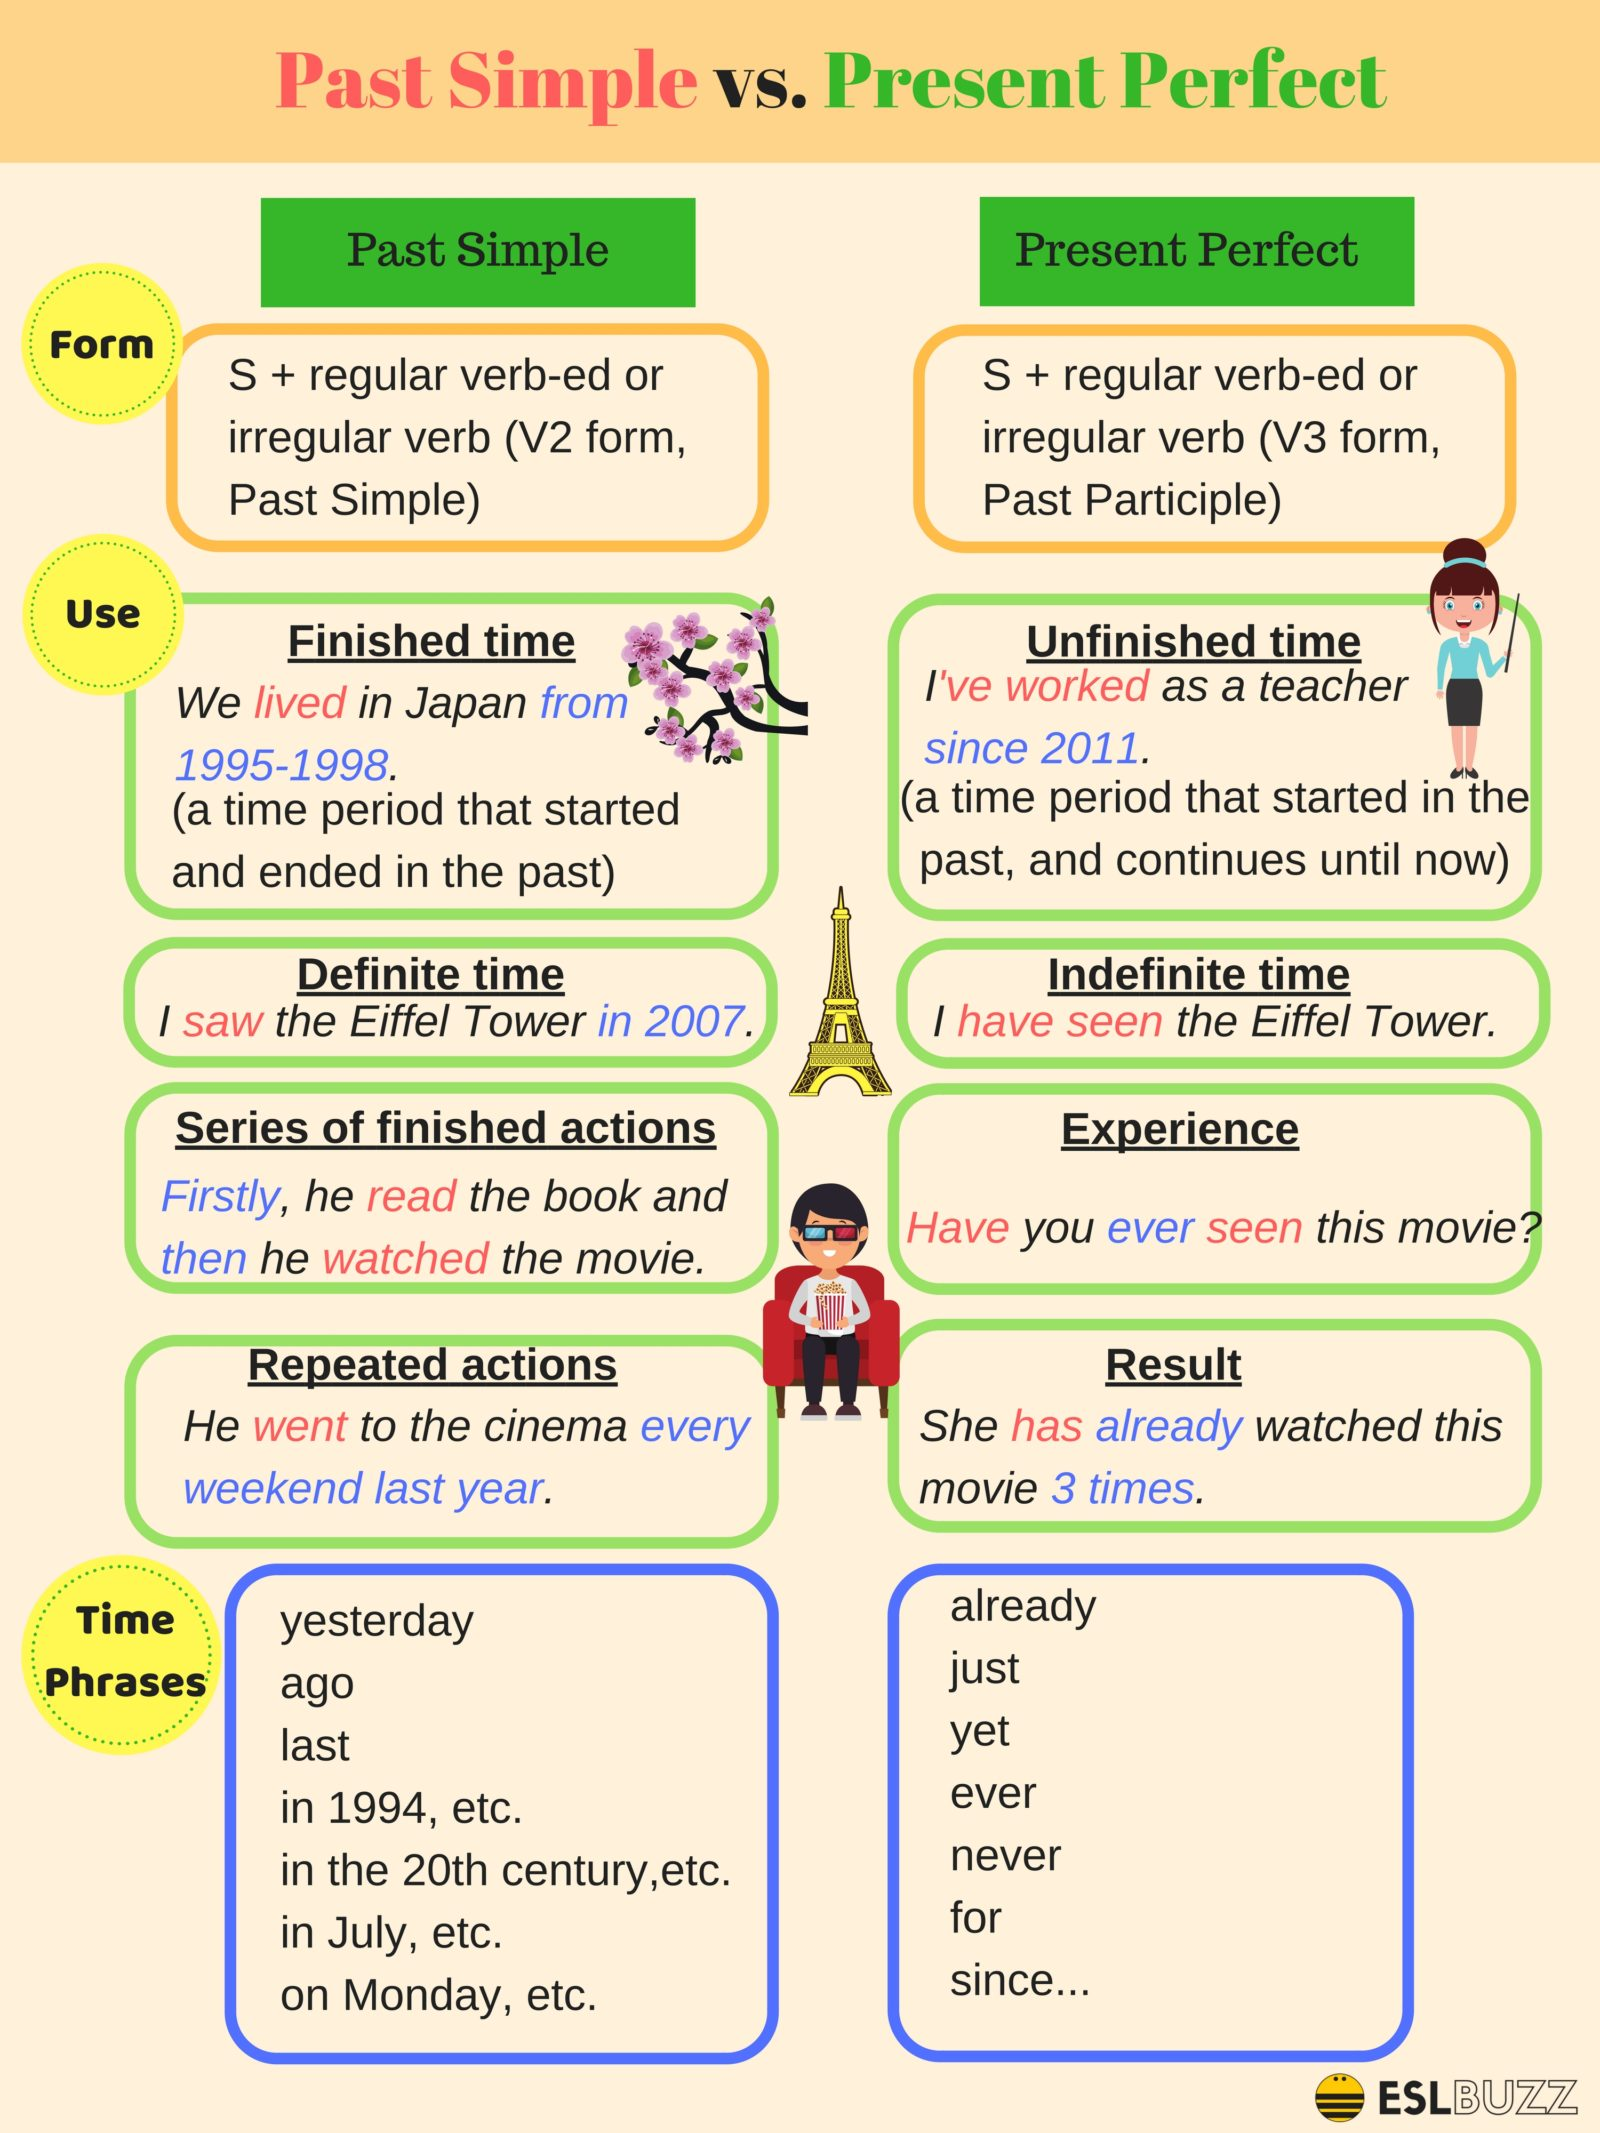 Past Simple and Present Perfect